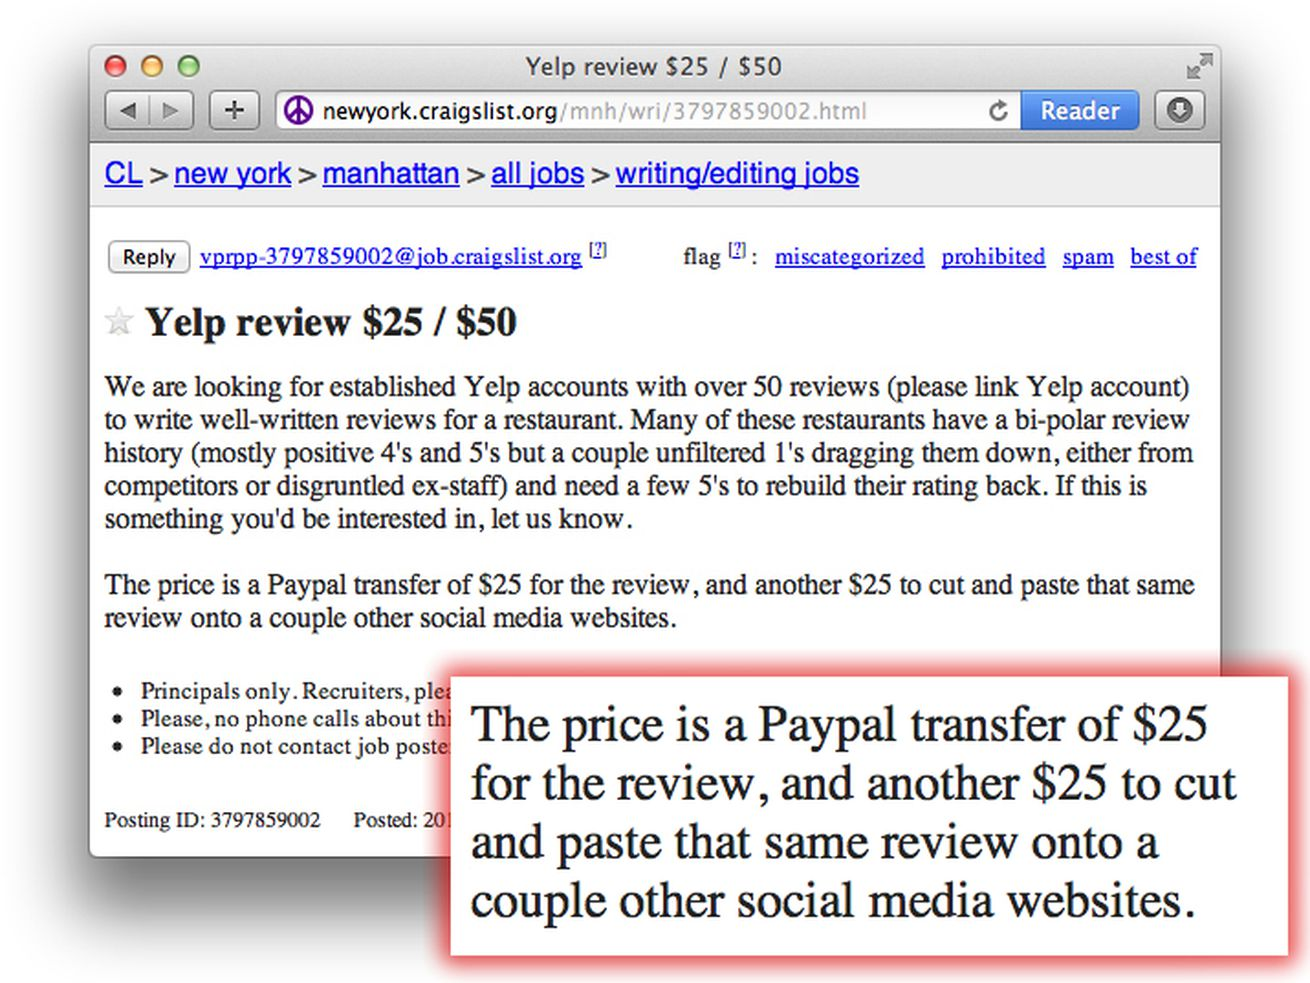 shady craigslist ad offers cash for fake yelp reviews